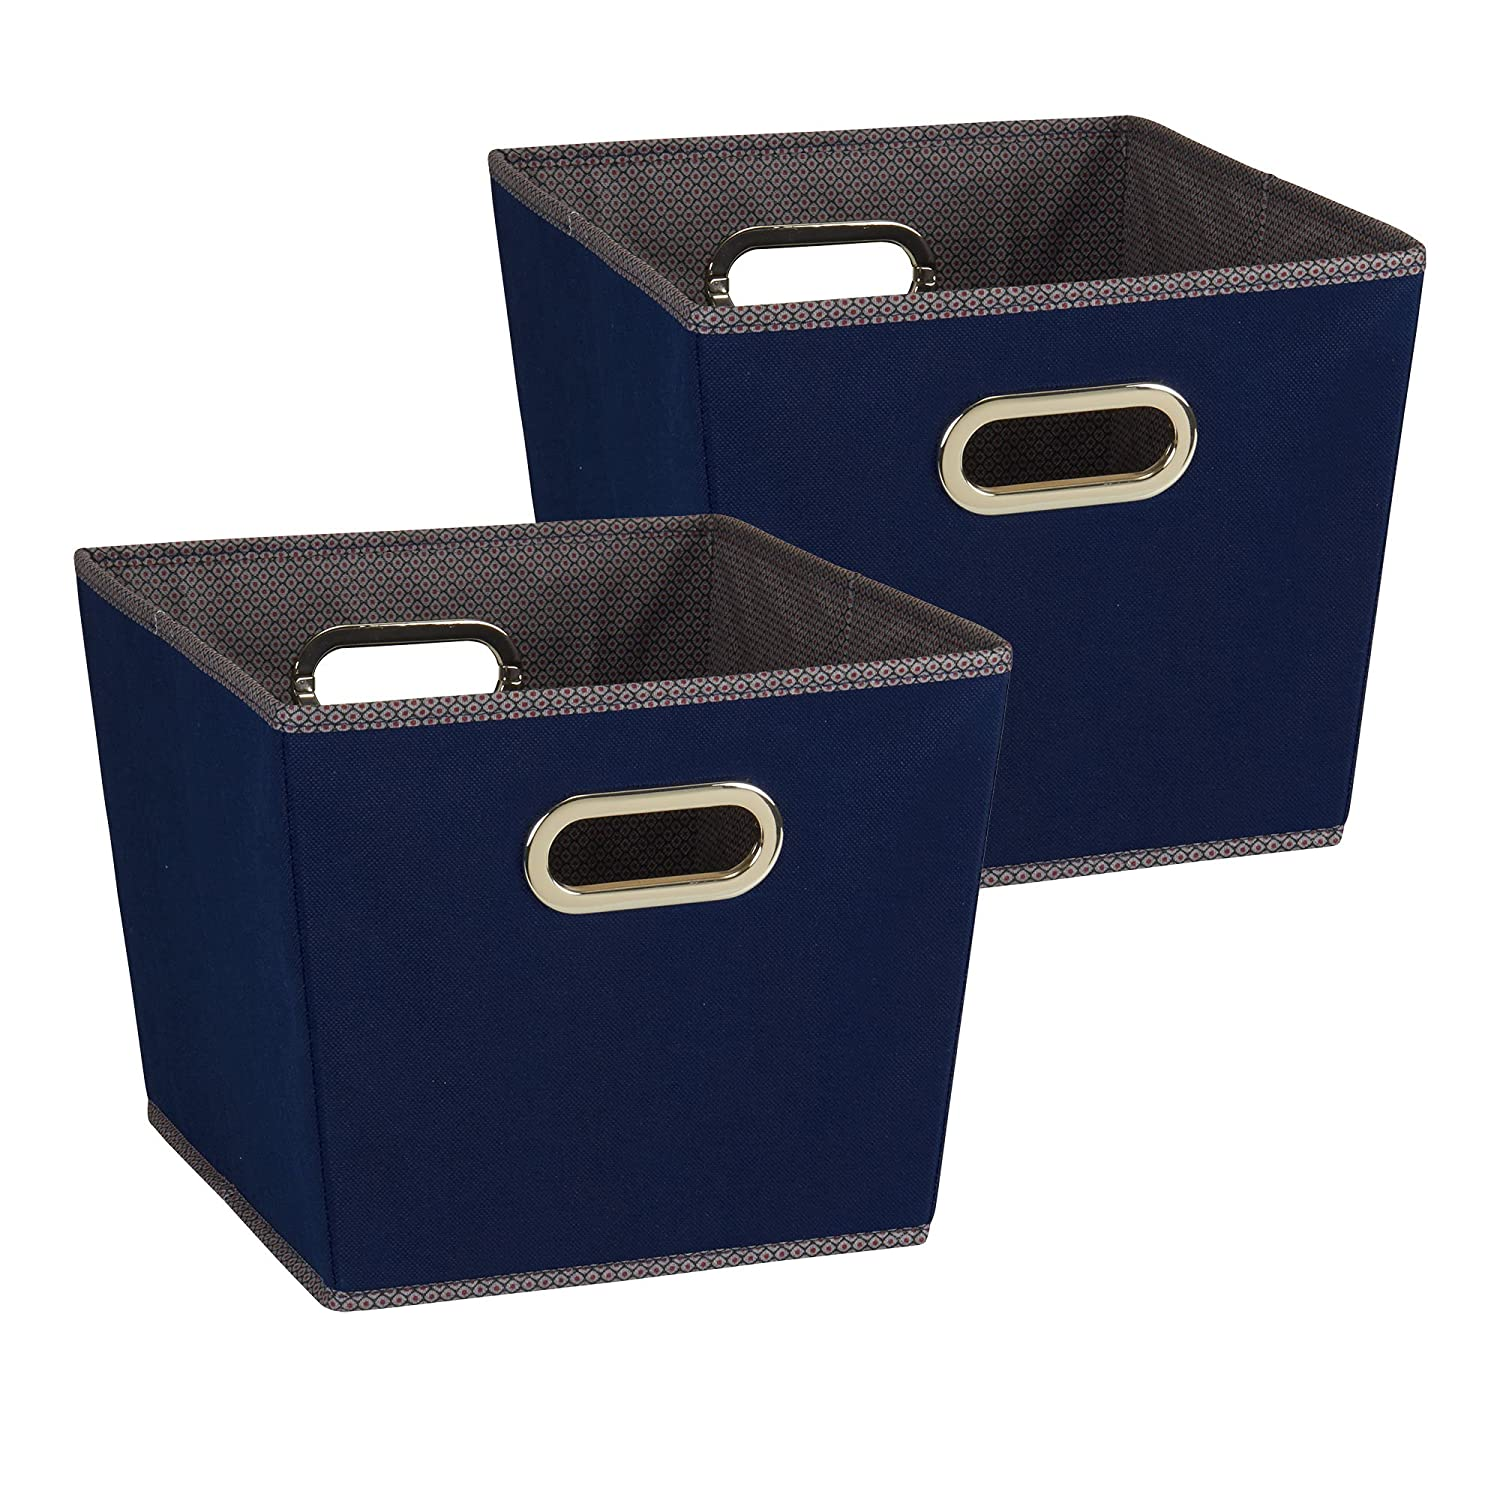 Amazon.com Household Essentials 94 Medium Tapered Decorative Storage Bins | 2 Pack Set Cubby Baskets | Navy Blue Home u0026 Kitchen  sc 1 st  Amazon.com & Amazon.com: Household Essentials 94 Medium Tapered Decorative ...